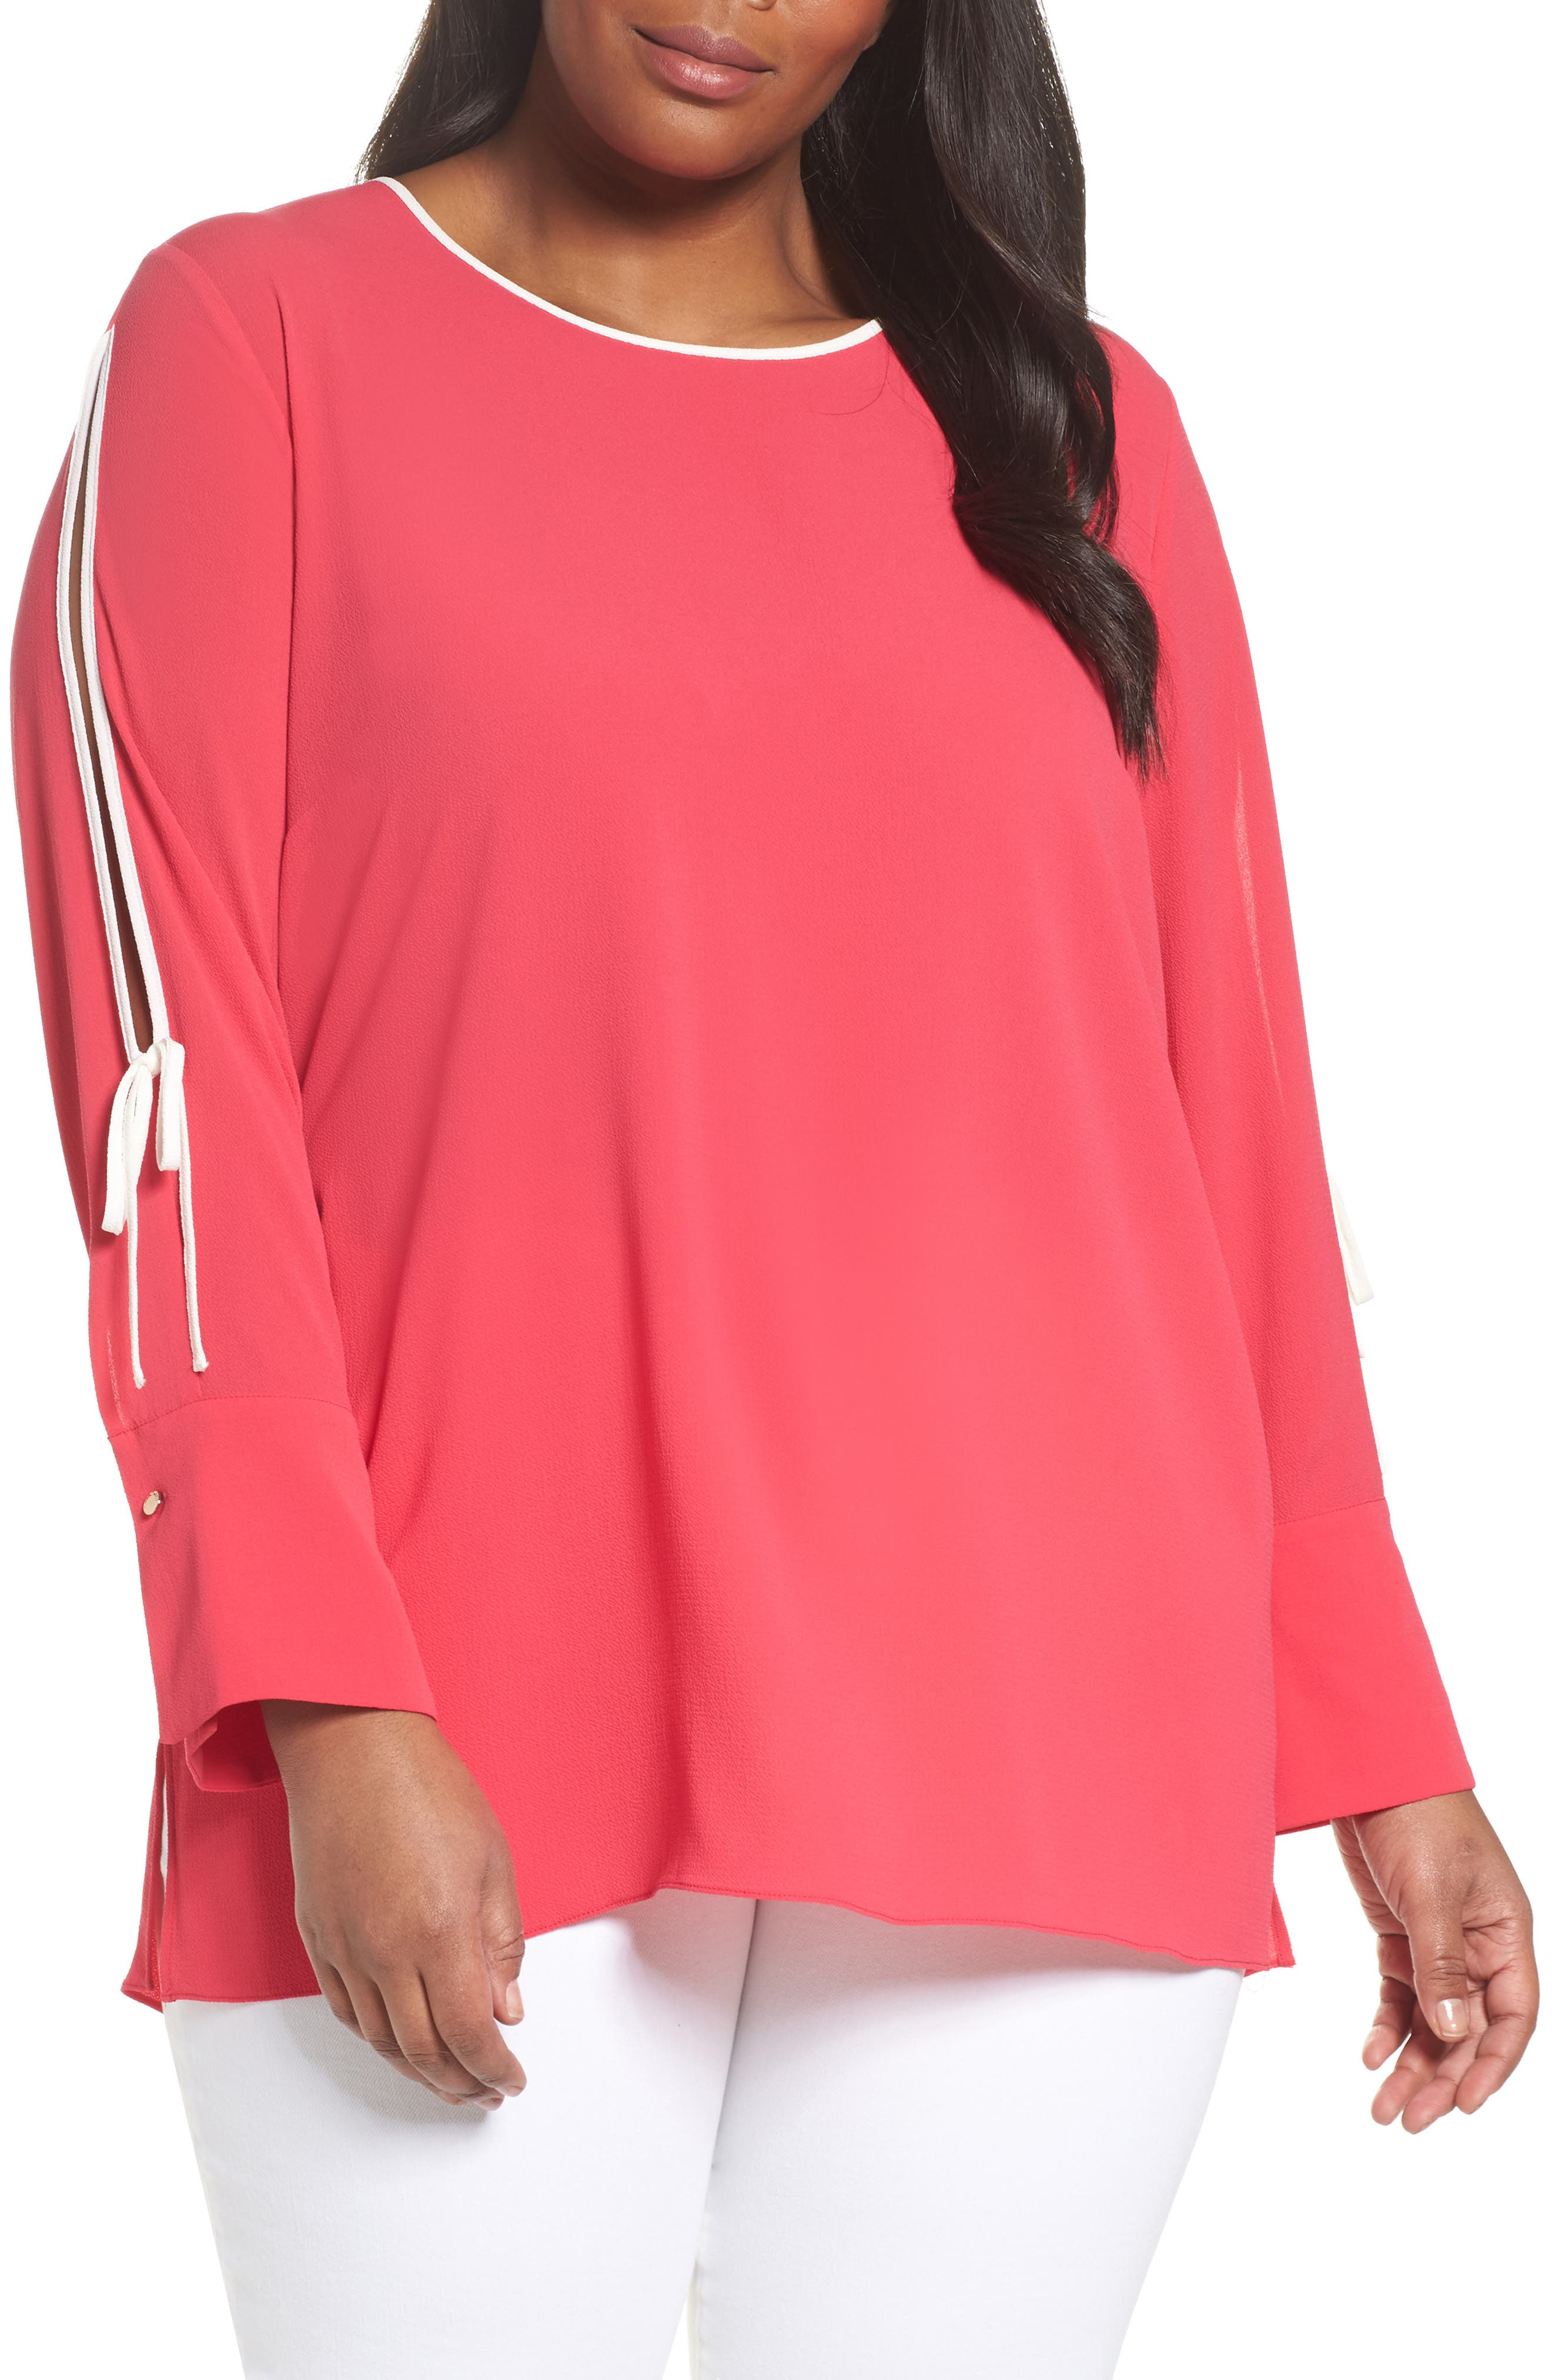 Bell Cuff Split Sleeve Shirt,                             Main thumbnail 1, color,                             Vibrant Pink